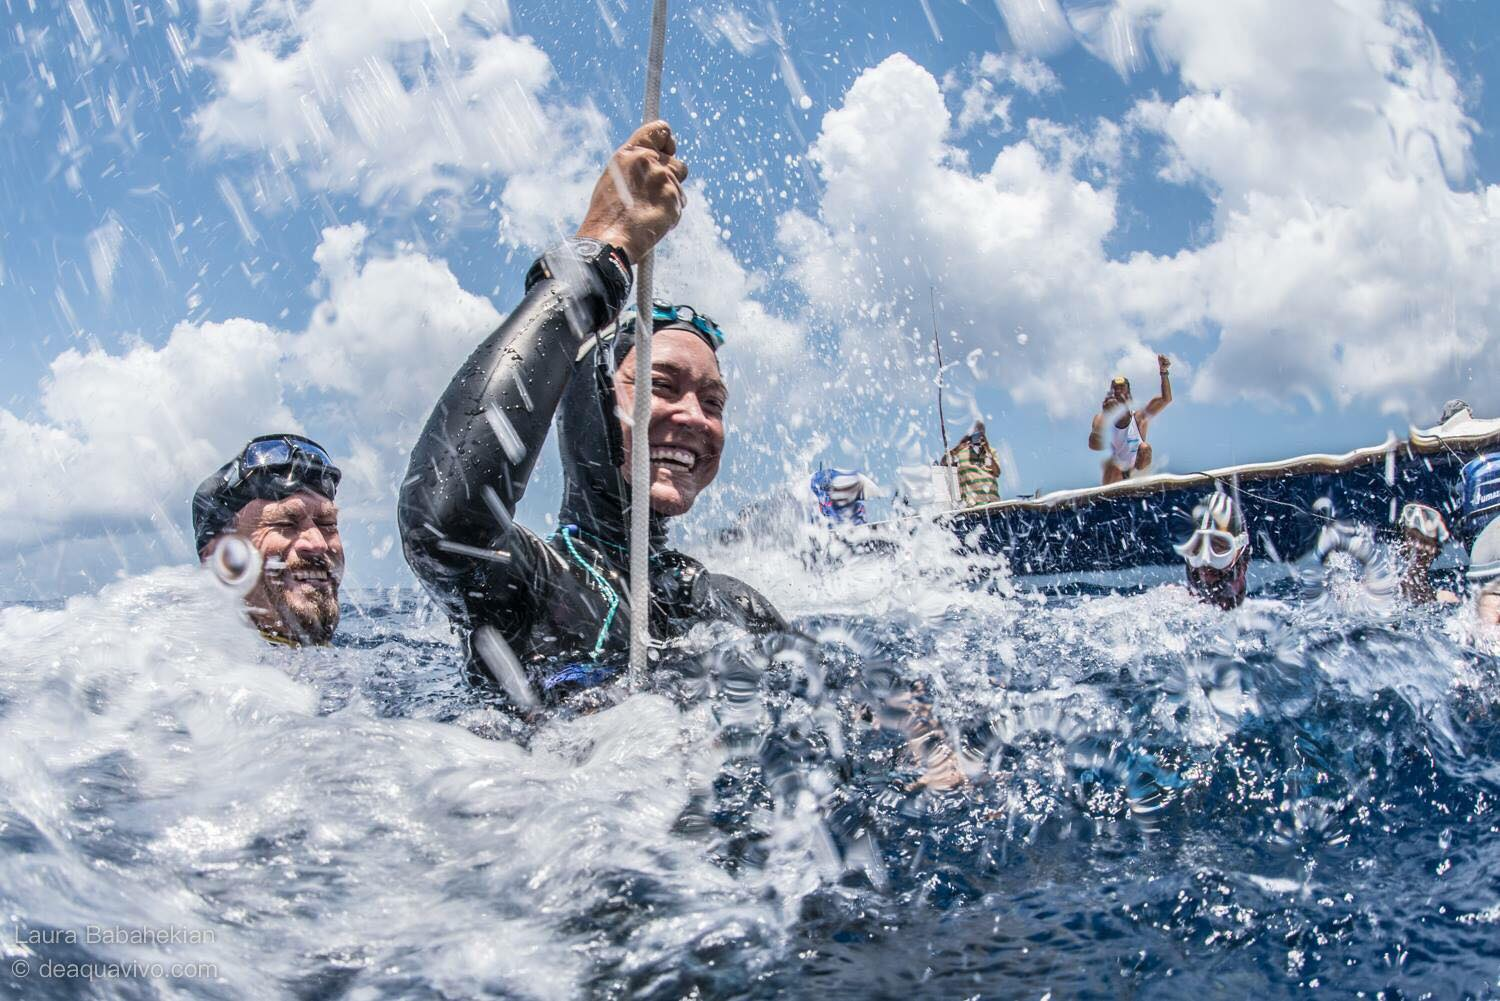 Alessia Zecchini Set News Constant Weight Freediving World Record. Photo by Laura Babahekian